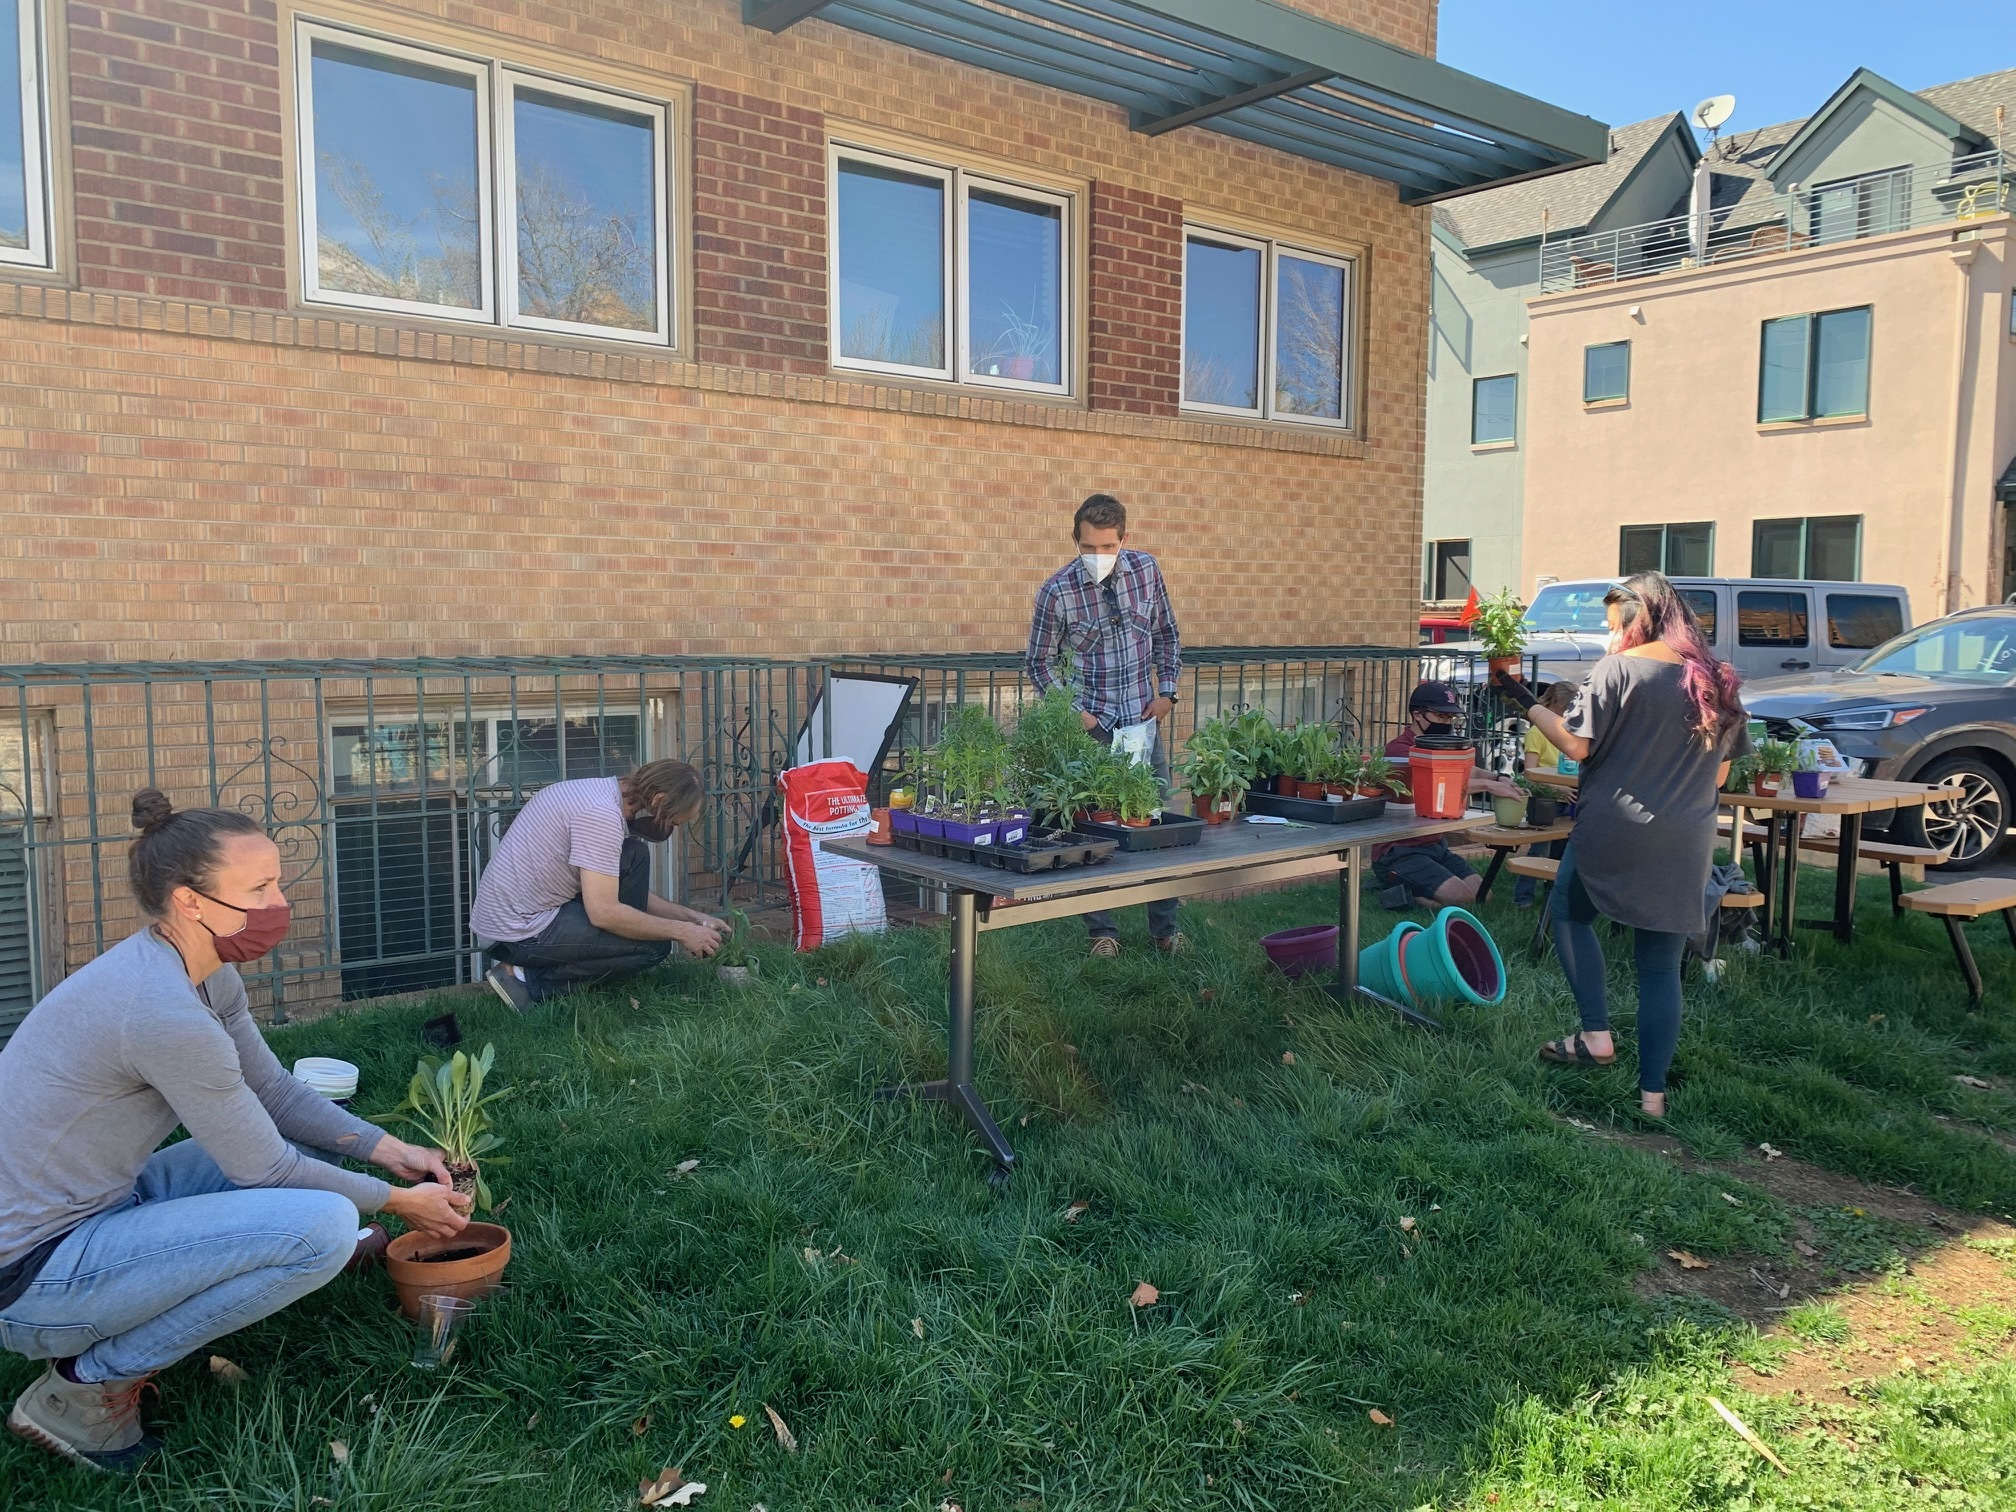 Group14 Celebrates Earth Day 2021